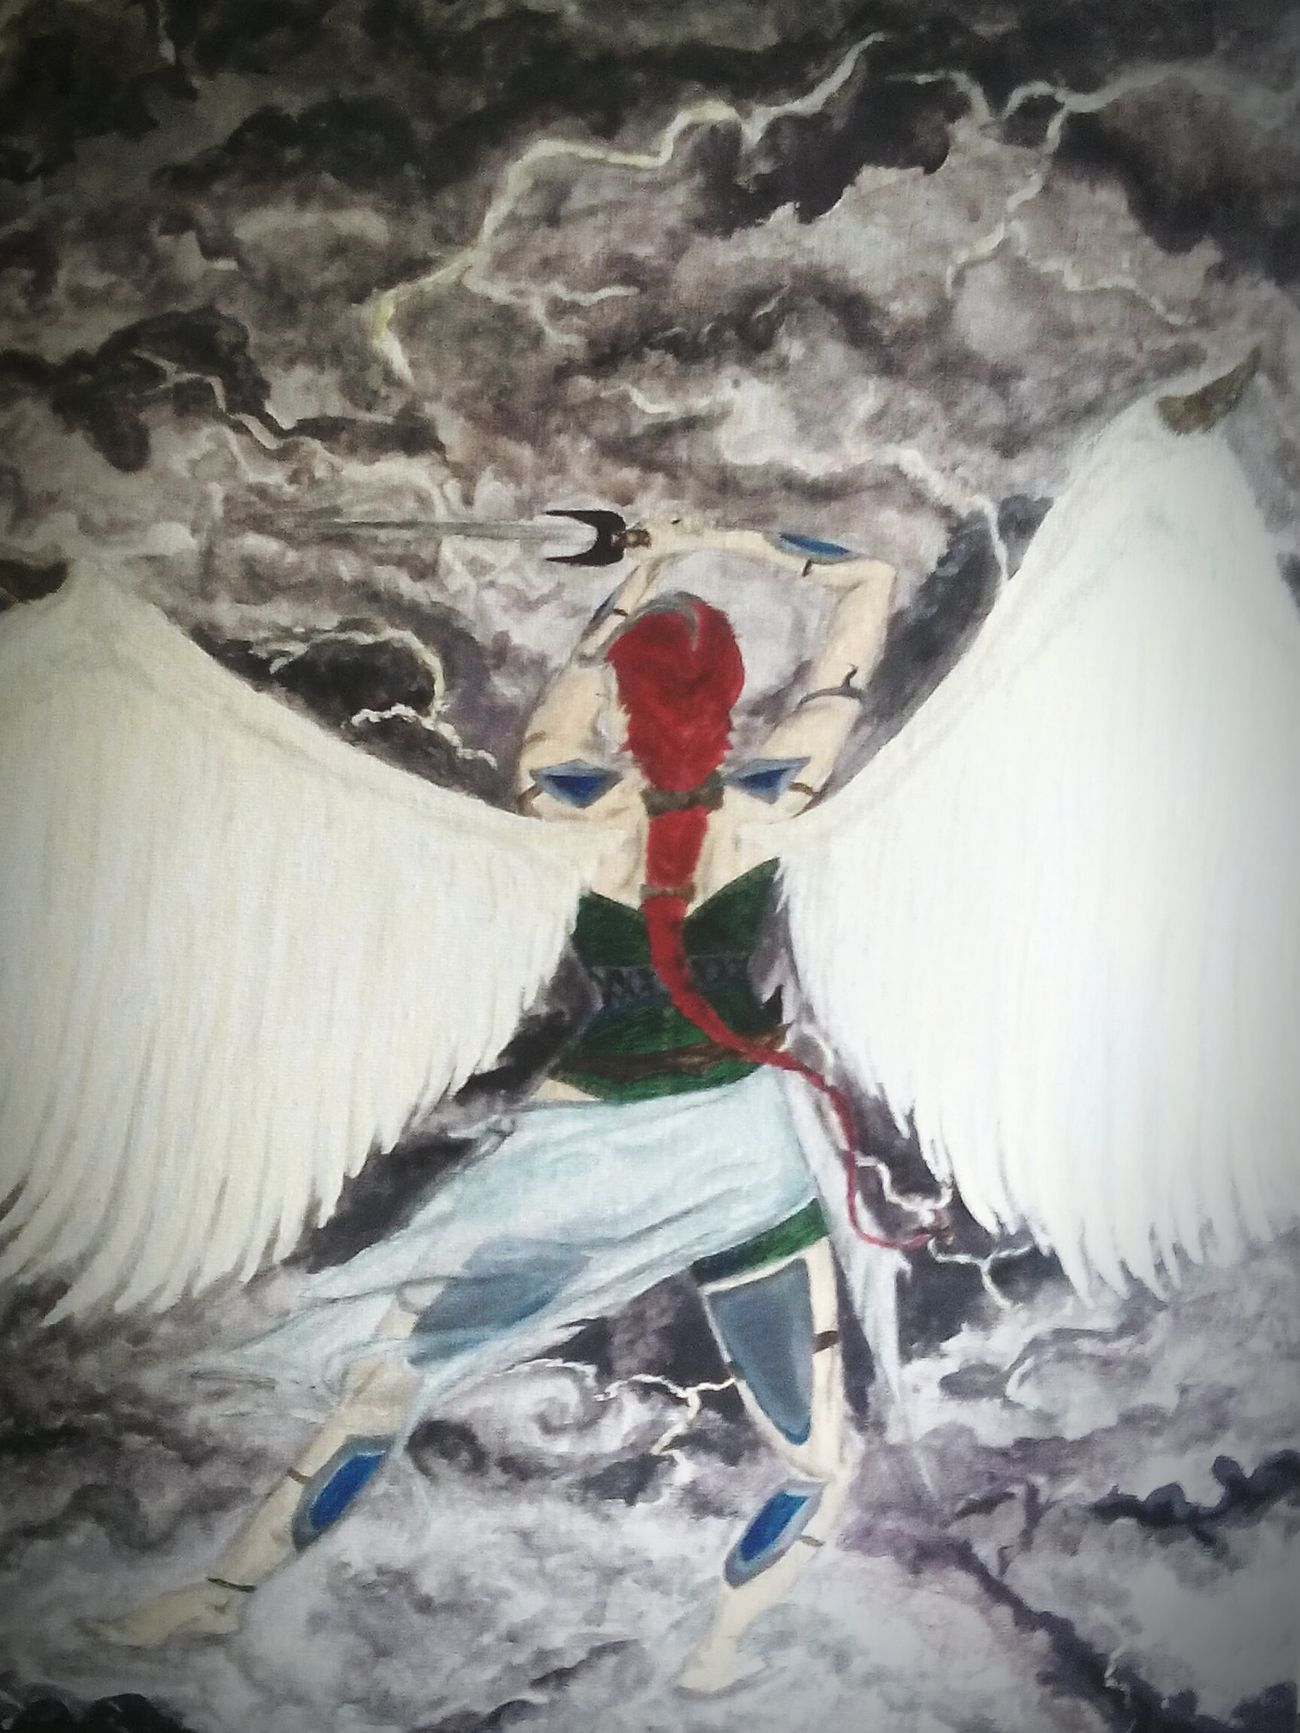 The latest Acrylic Painting ~ Red Headed Valkyrie Warrior Battling The Elements... : of Thunderstorm with two Swords